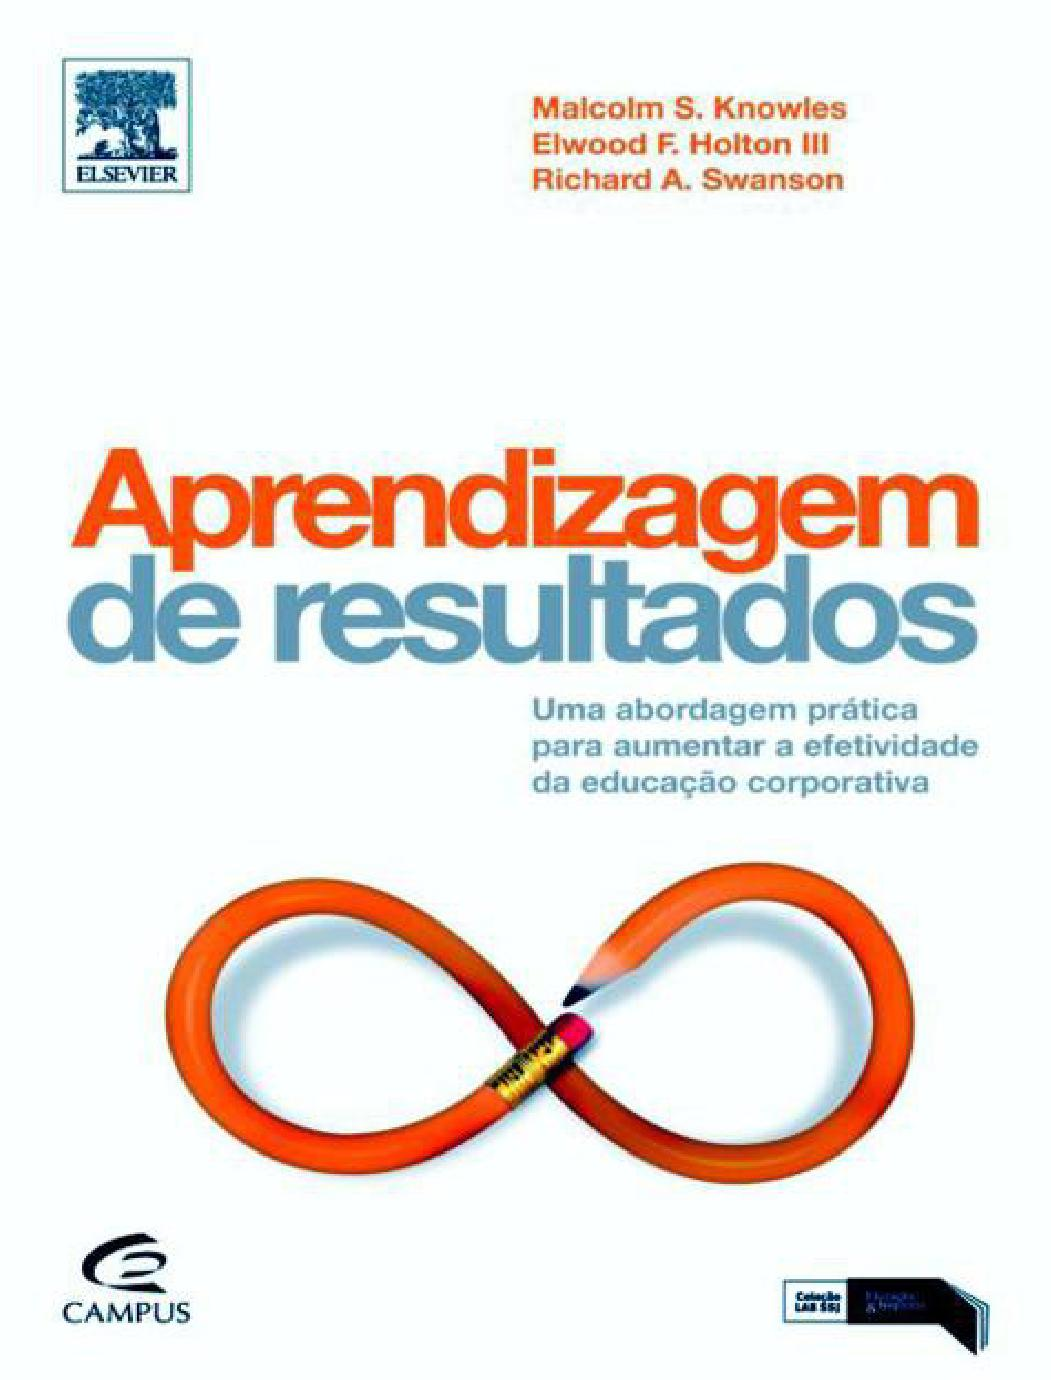 Aprendizagem de resultados malcolm knowles by micsquize issuu fandeluxe Choice Image